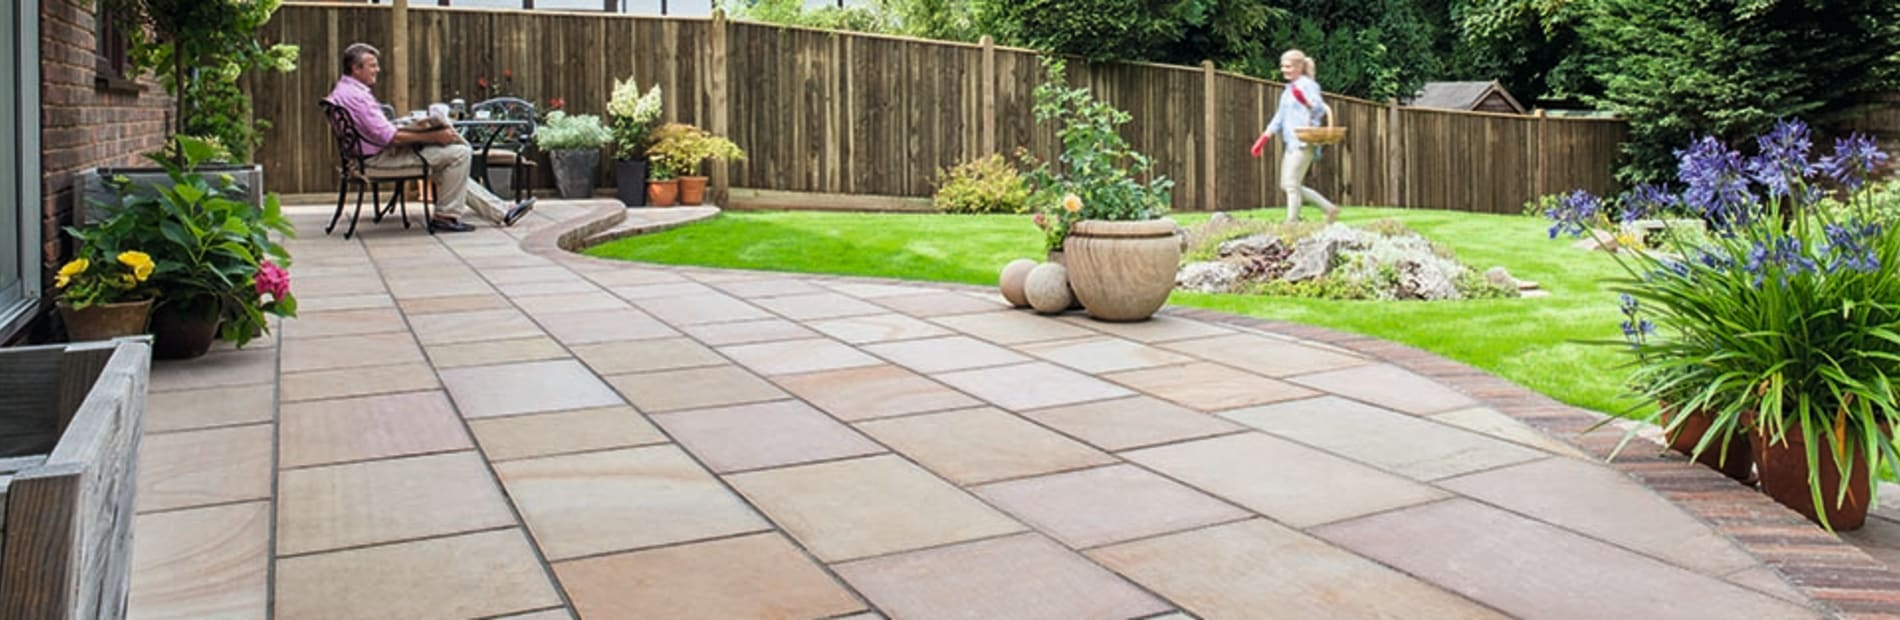 buff paving laid on a garden patio area.